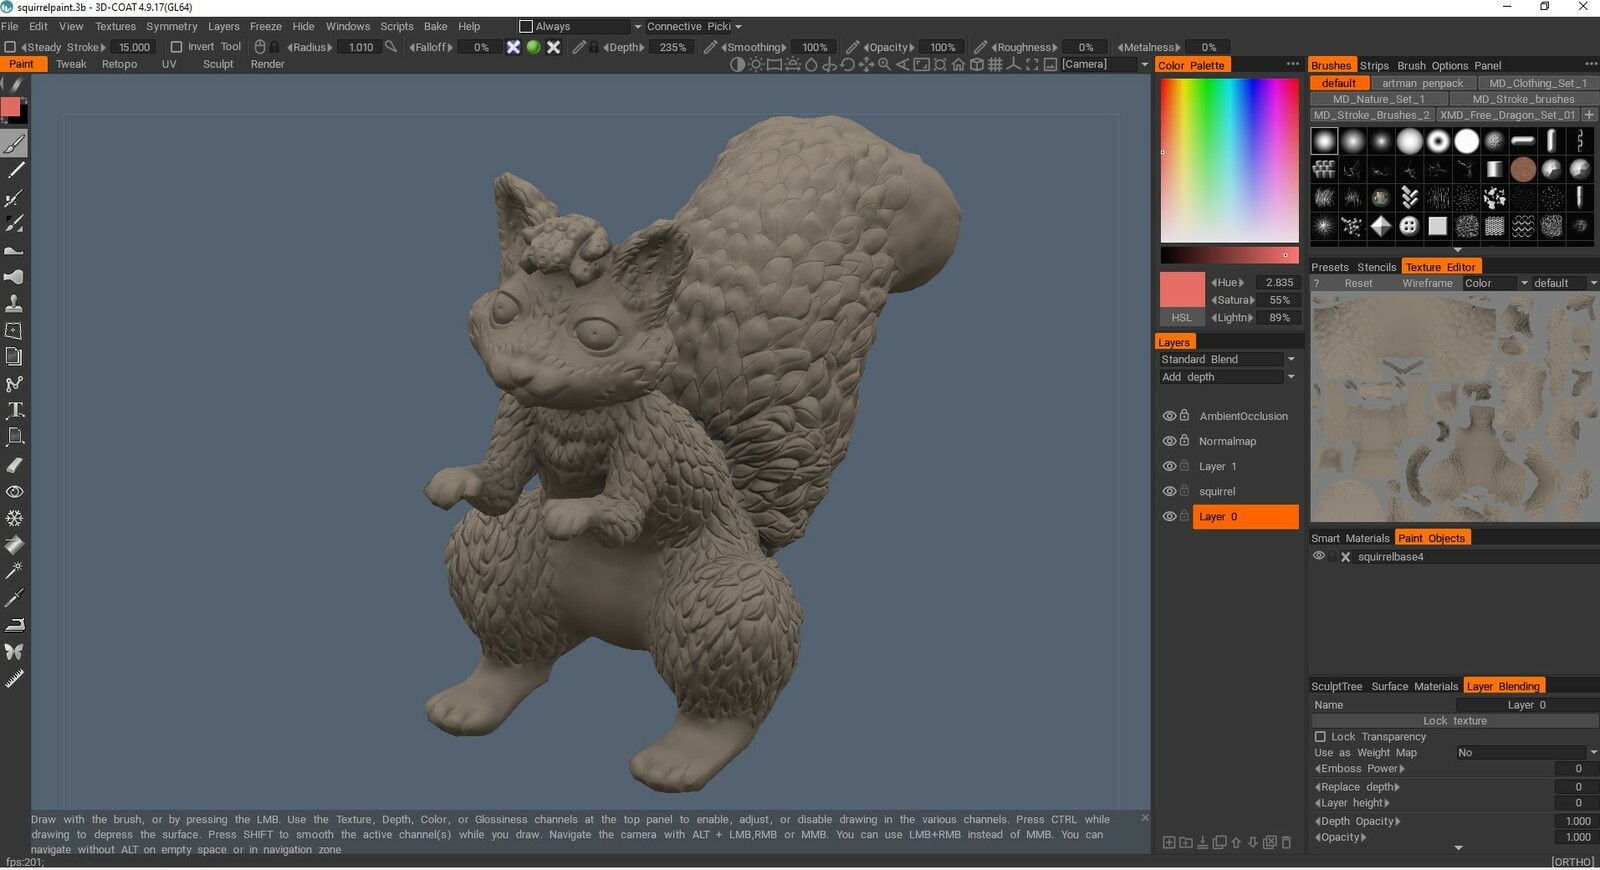 Baking normals and ambient occlusion textures